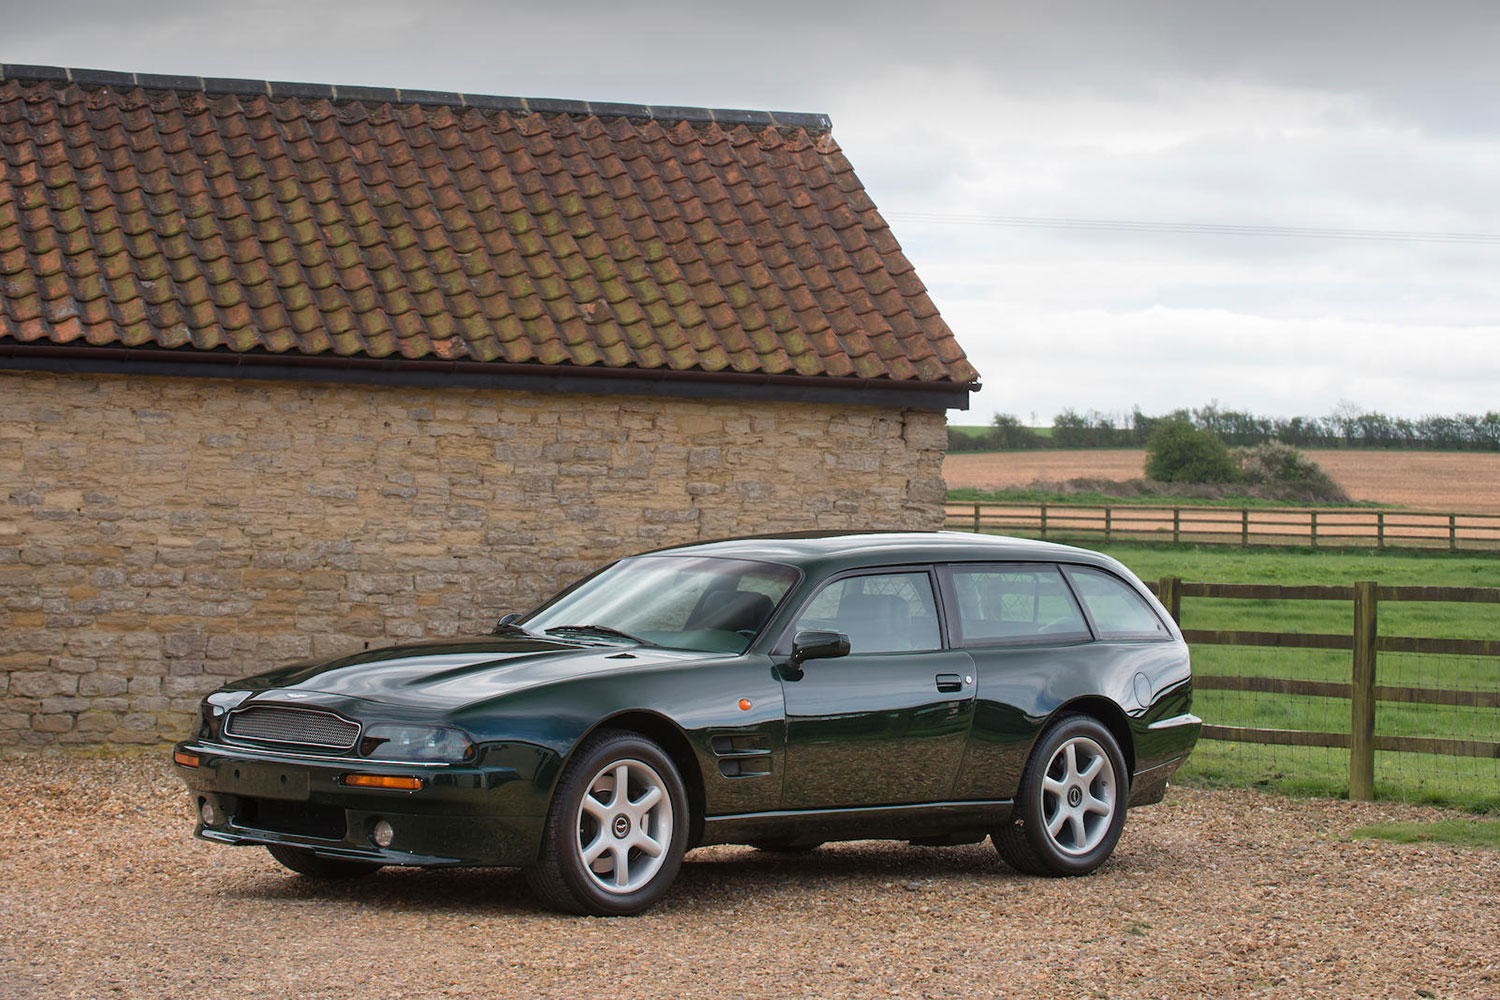 10 of the Best Annual Classic Car Auctions in the UK